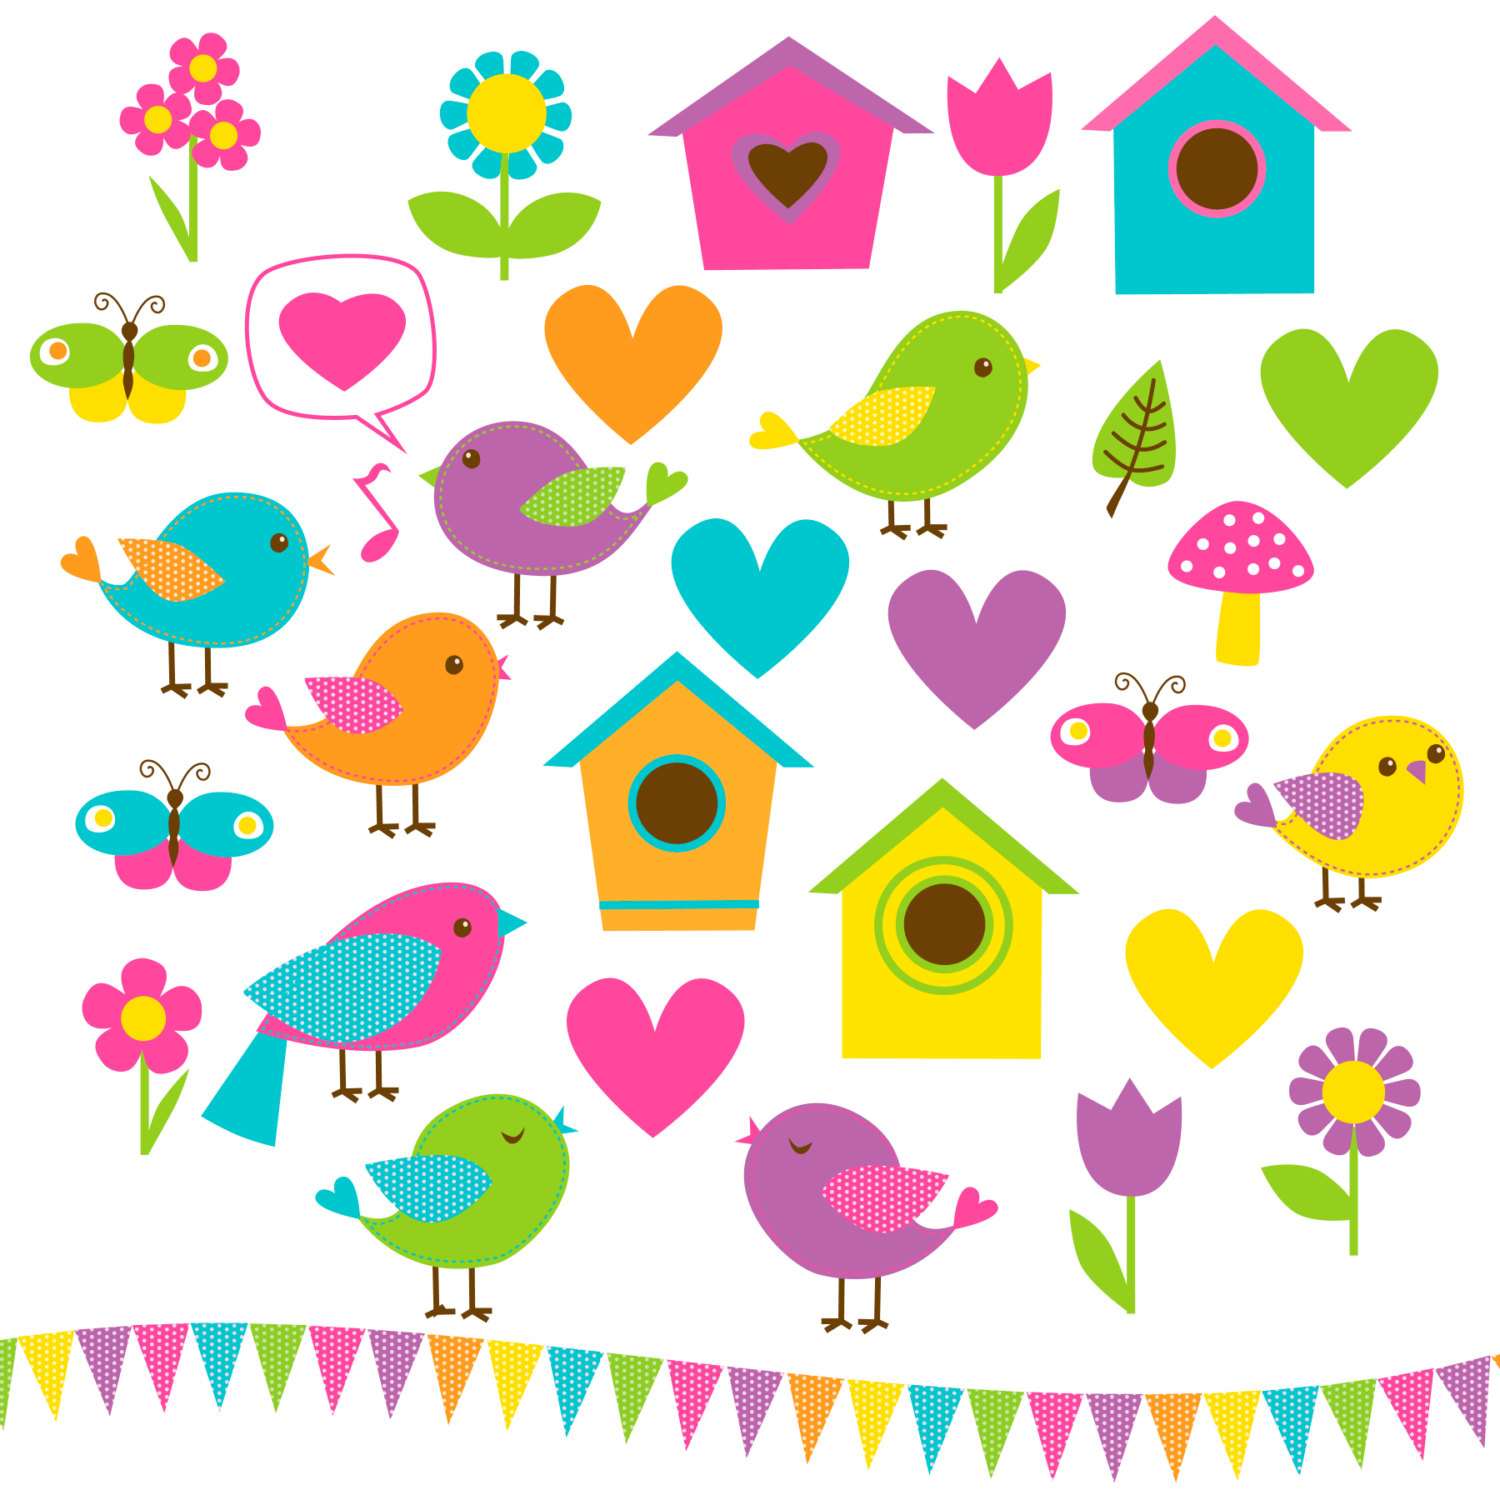 Scrapbook clipart. Free scrapbooking cliparts download